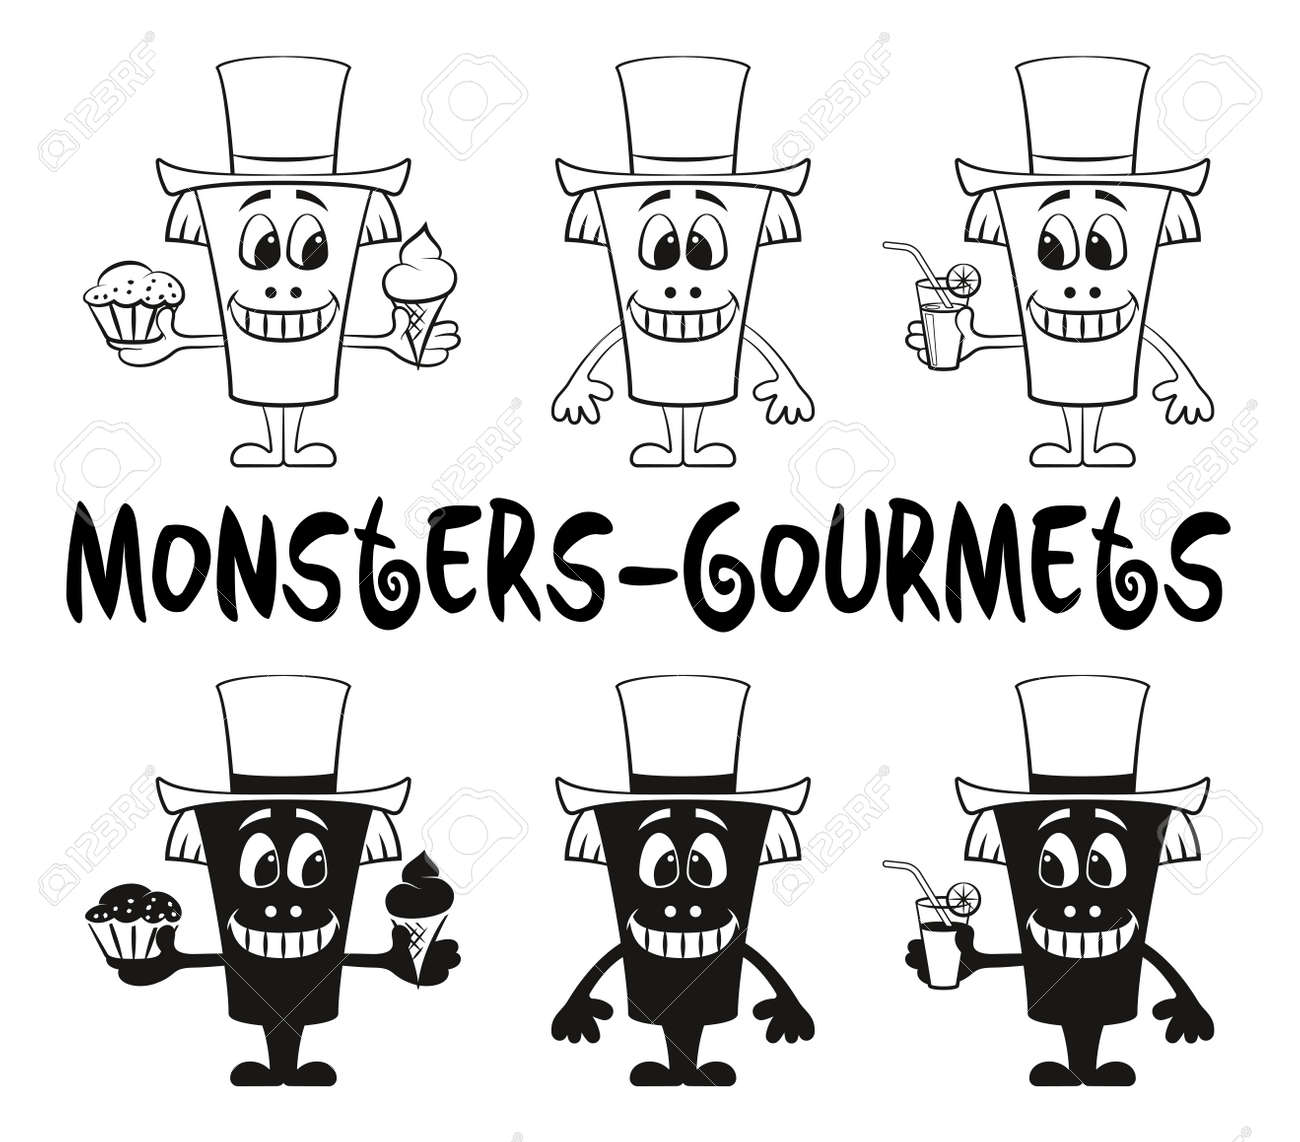 Set Of Cute Cartoon Monsters Gourmets Black Contour And Silhouette Royalty Free Cliparts Vectors And Stock Illustration Image 60378519